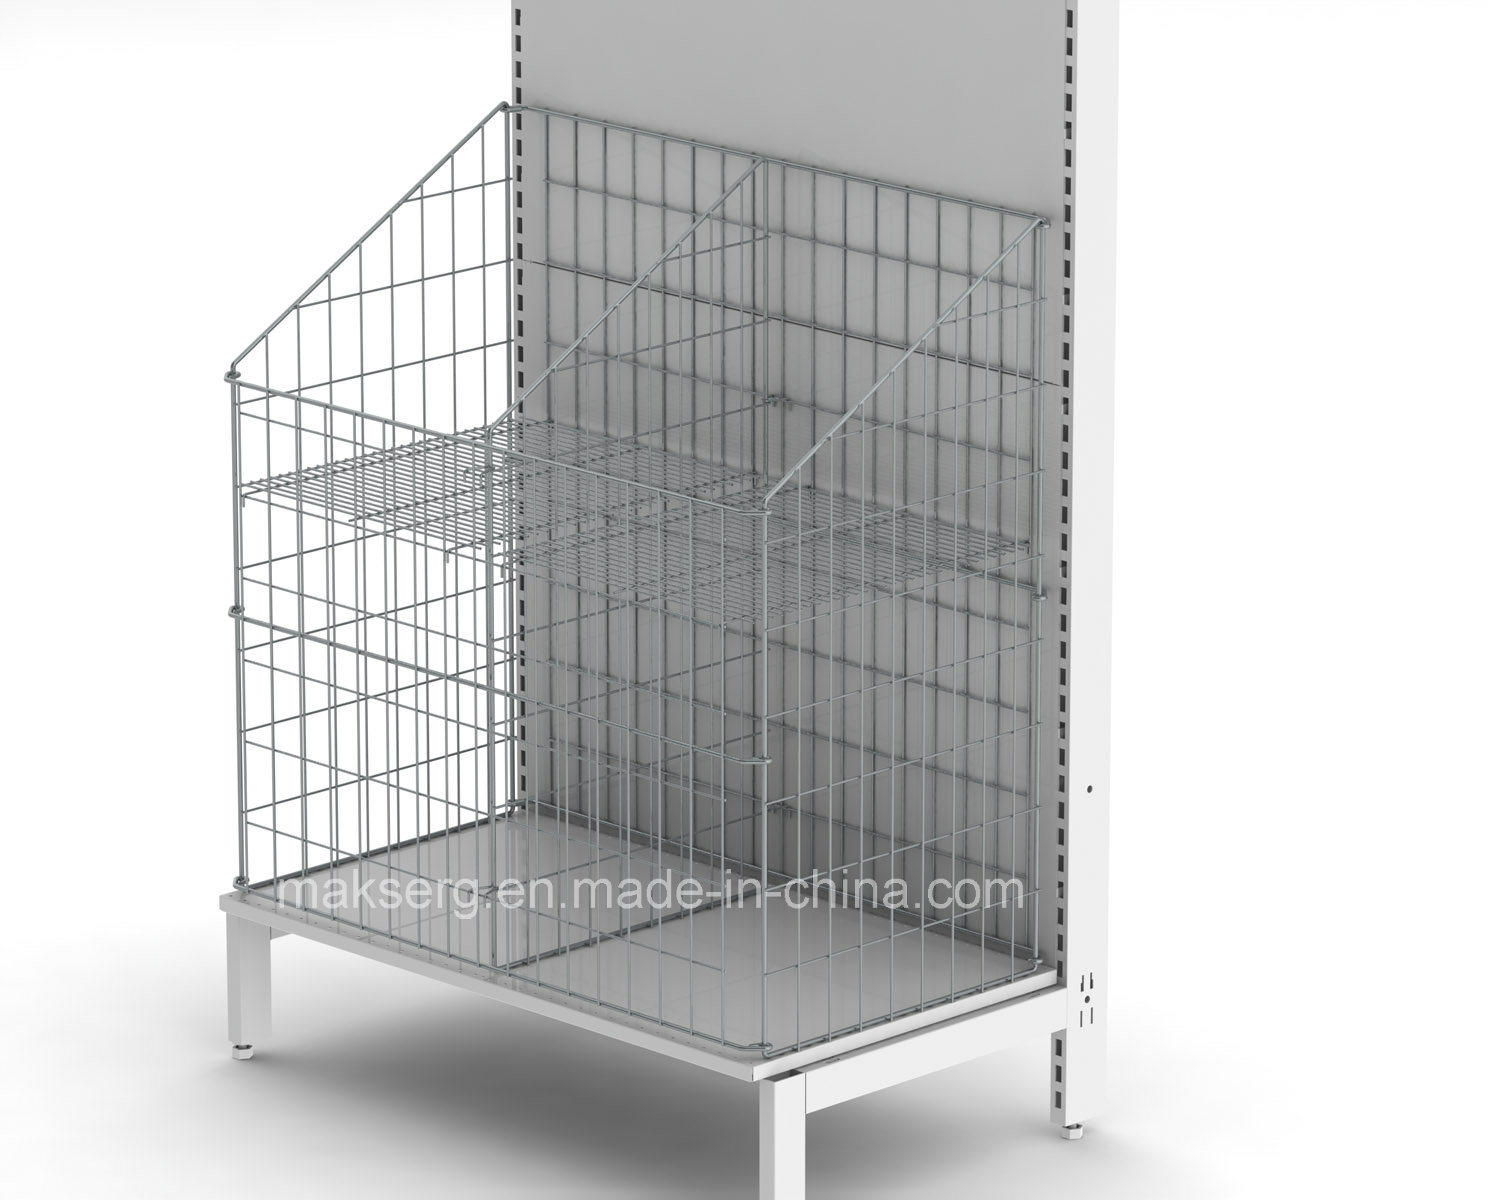 Powder Coated Metal Storage Shelf for Malls